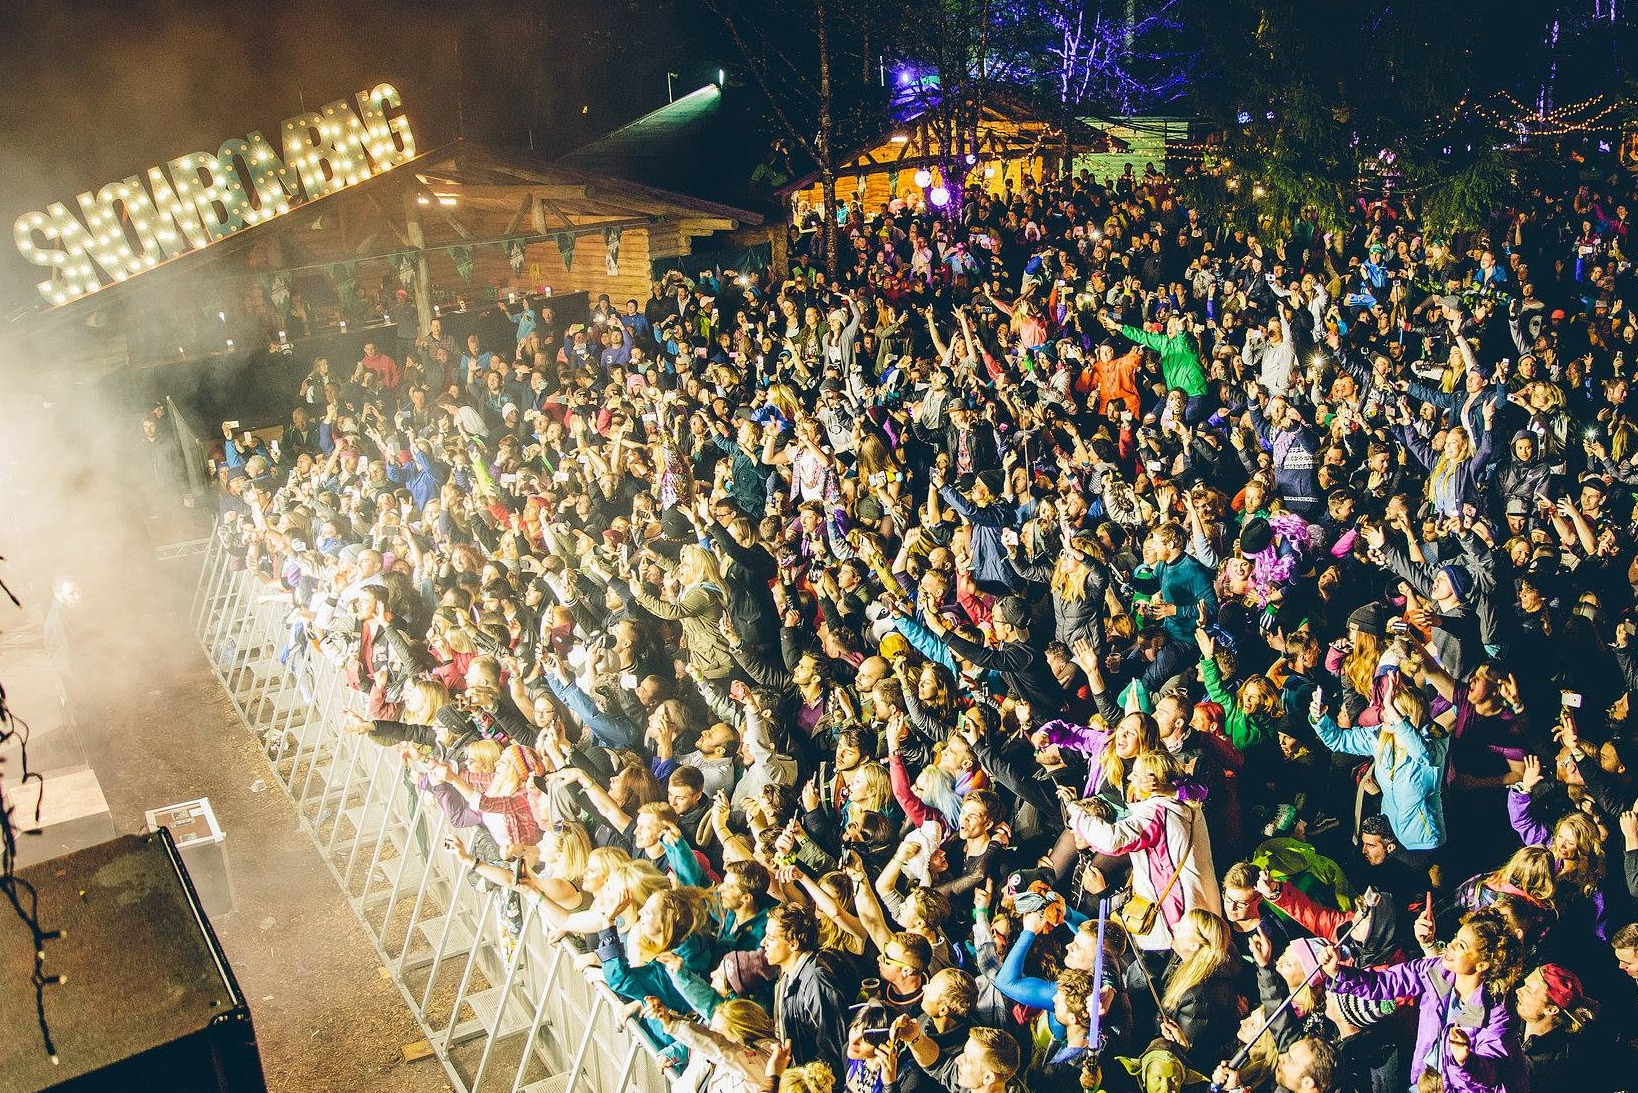 Crowds partying at night at Snowbombing festival, Austria